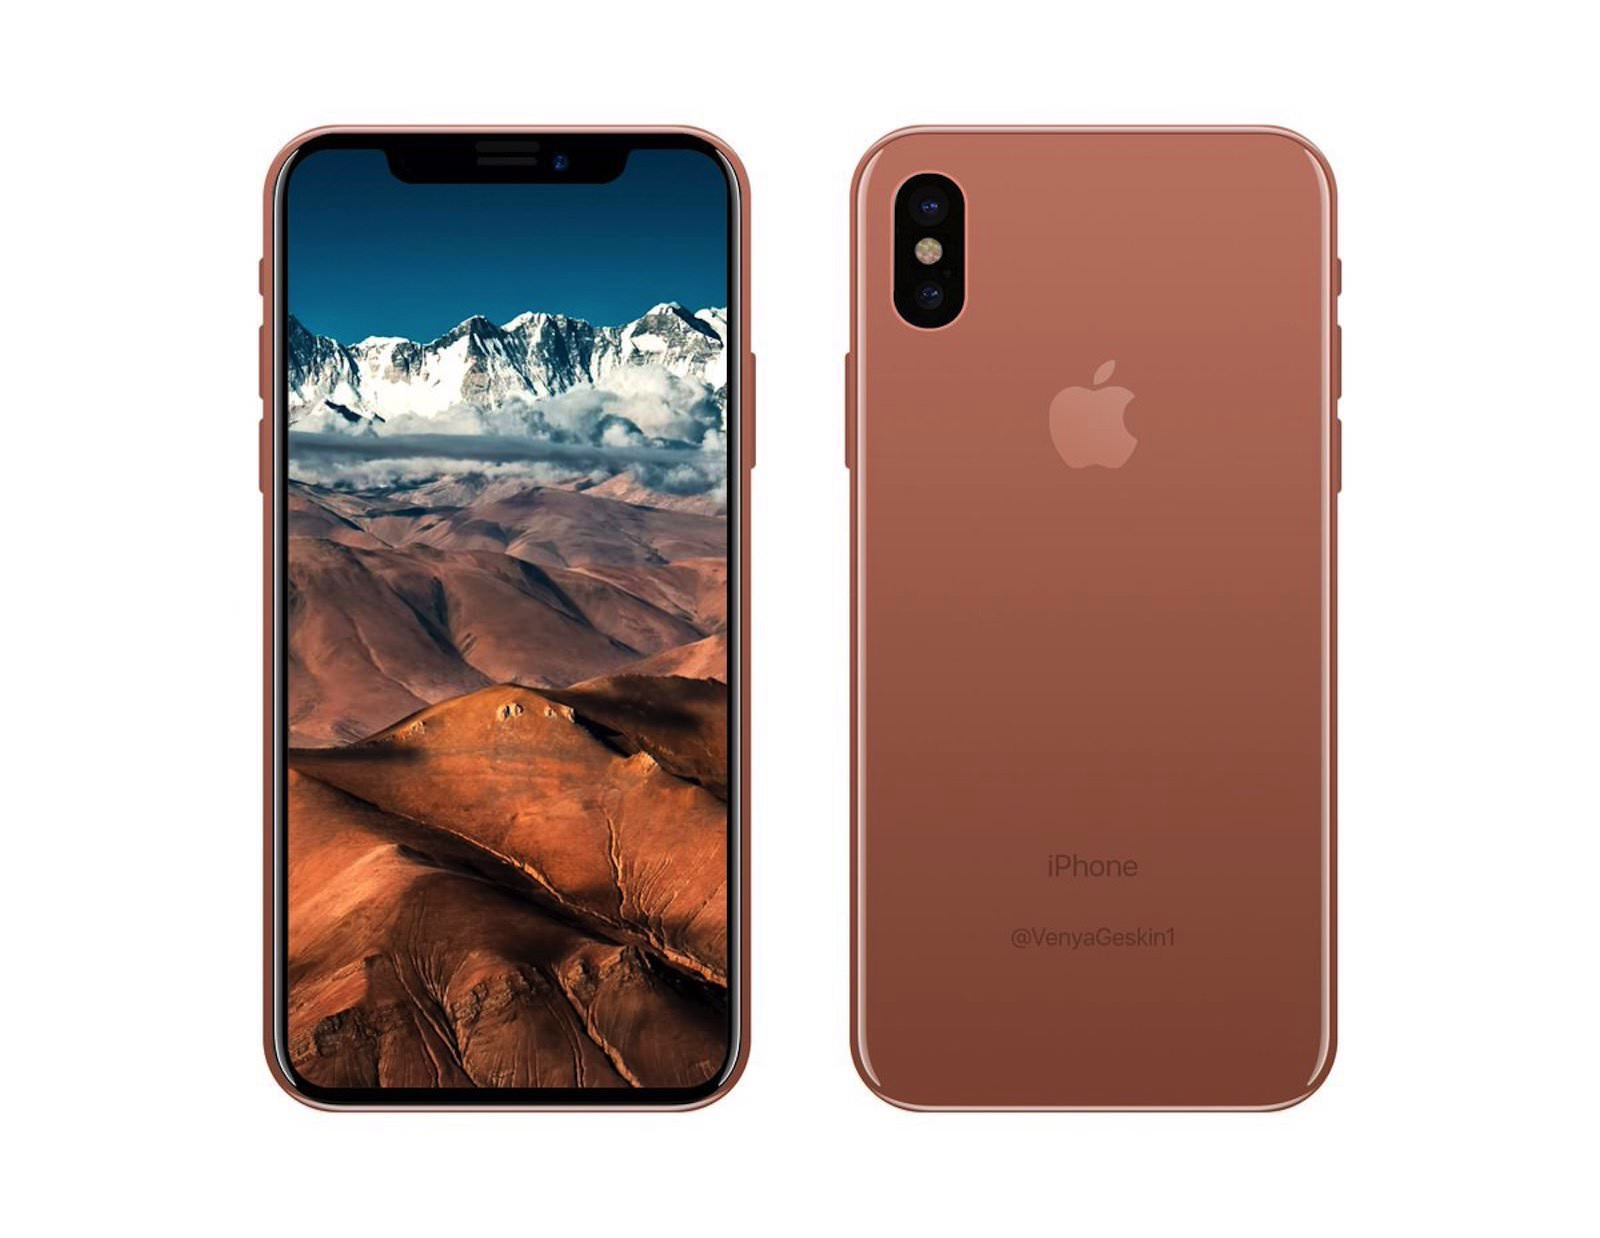 Blush Gold iPhoneX